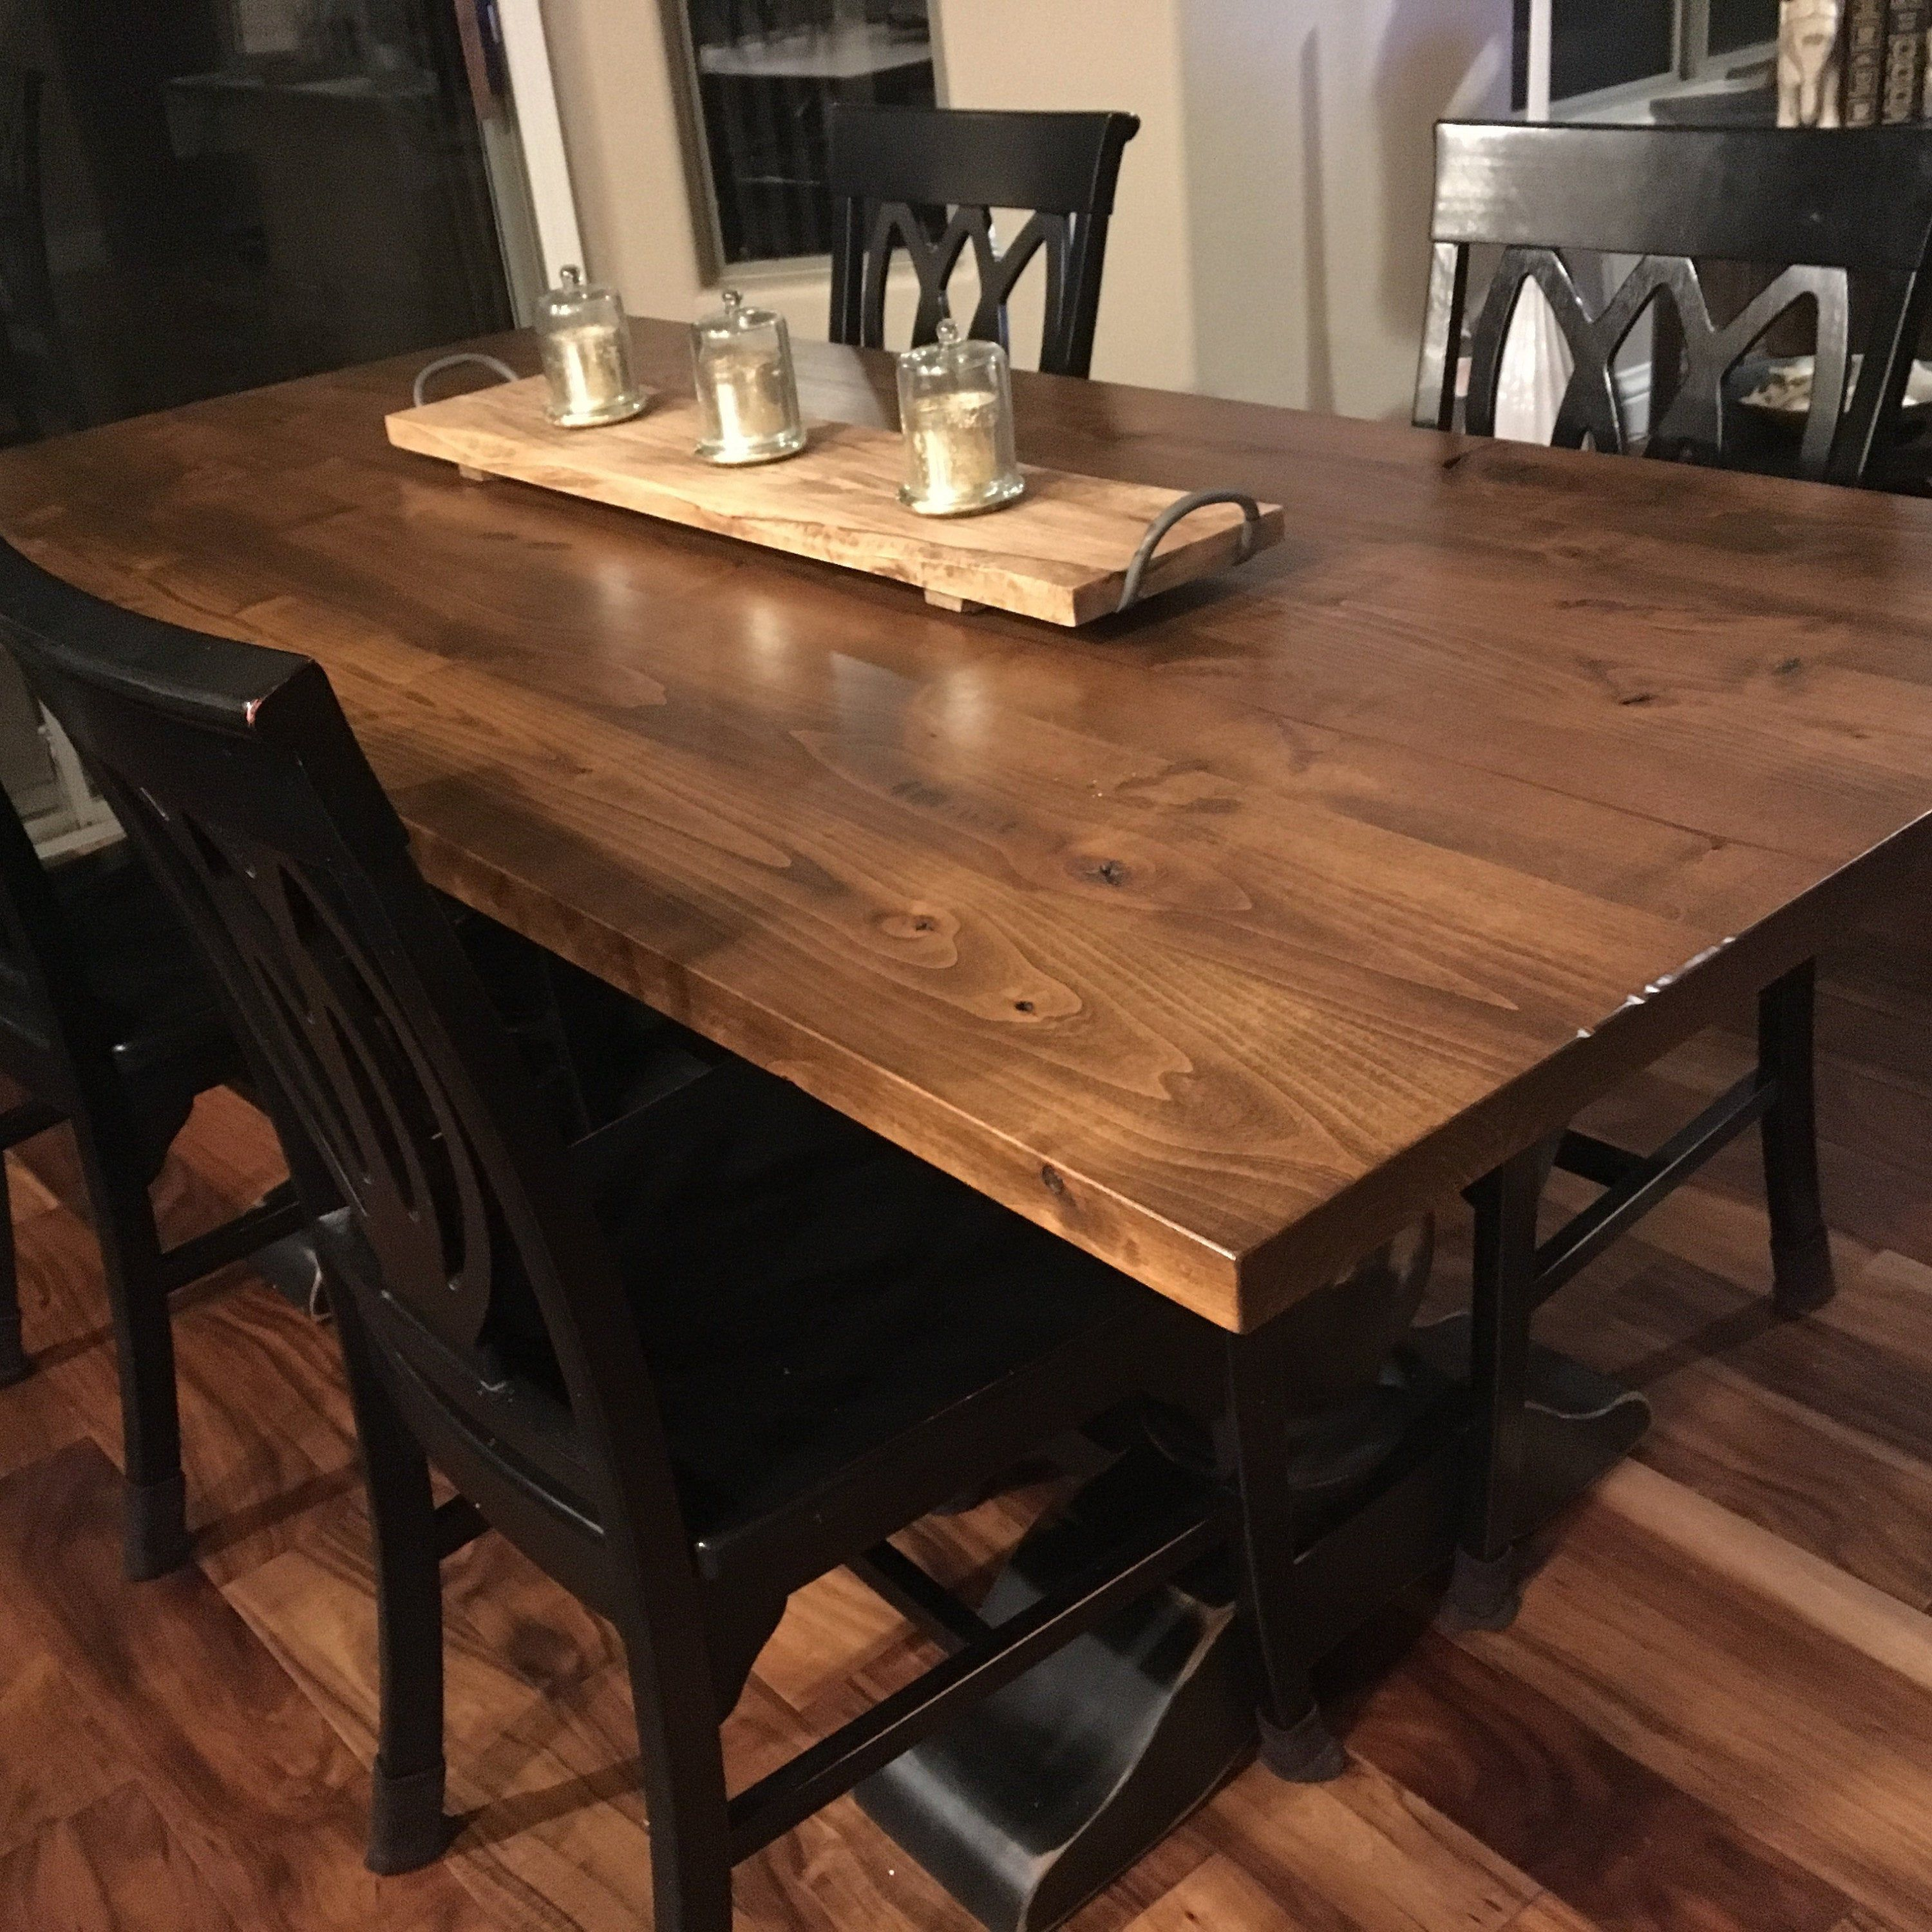 Double Pedestal Style Trestle Dining Table Fully Customizable Round Pedestal Dining Table Pedestal Dining Table Round Pedestal Dining